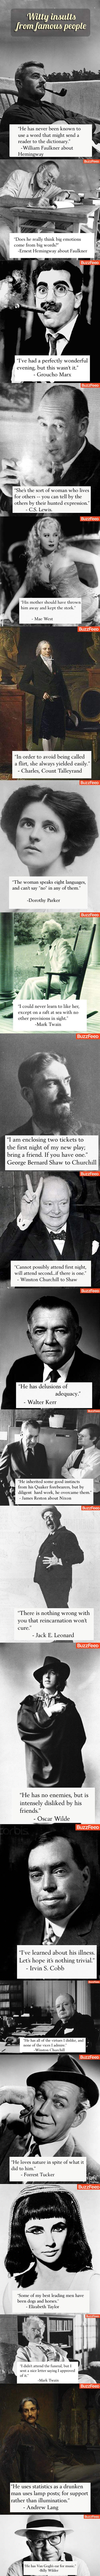 Witty Insults from Famous People